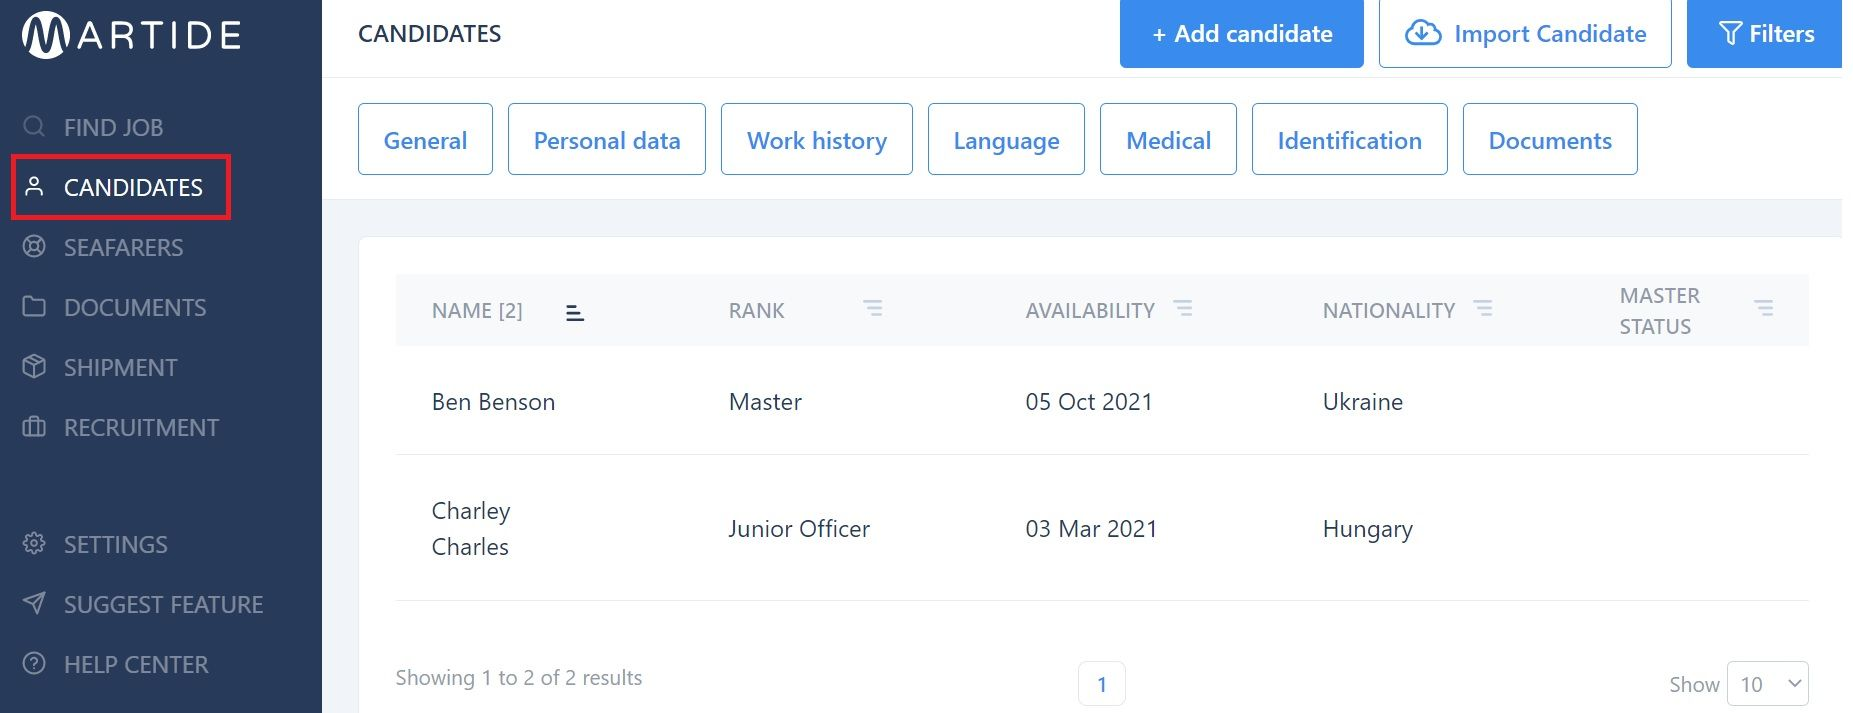 screenshot of Martide website showing the candidates page